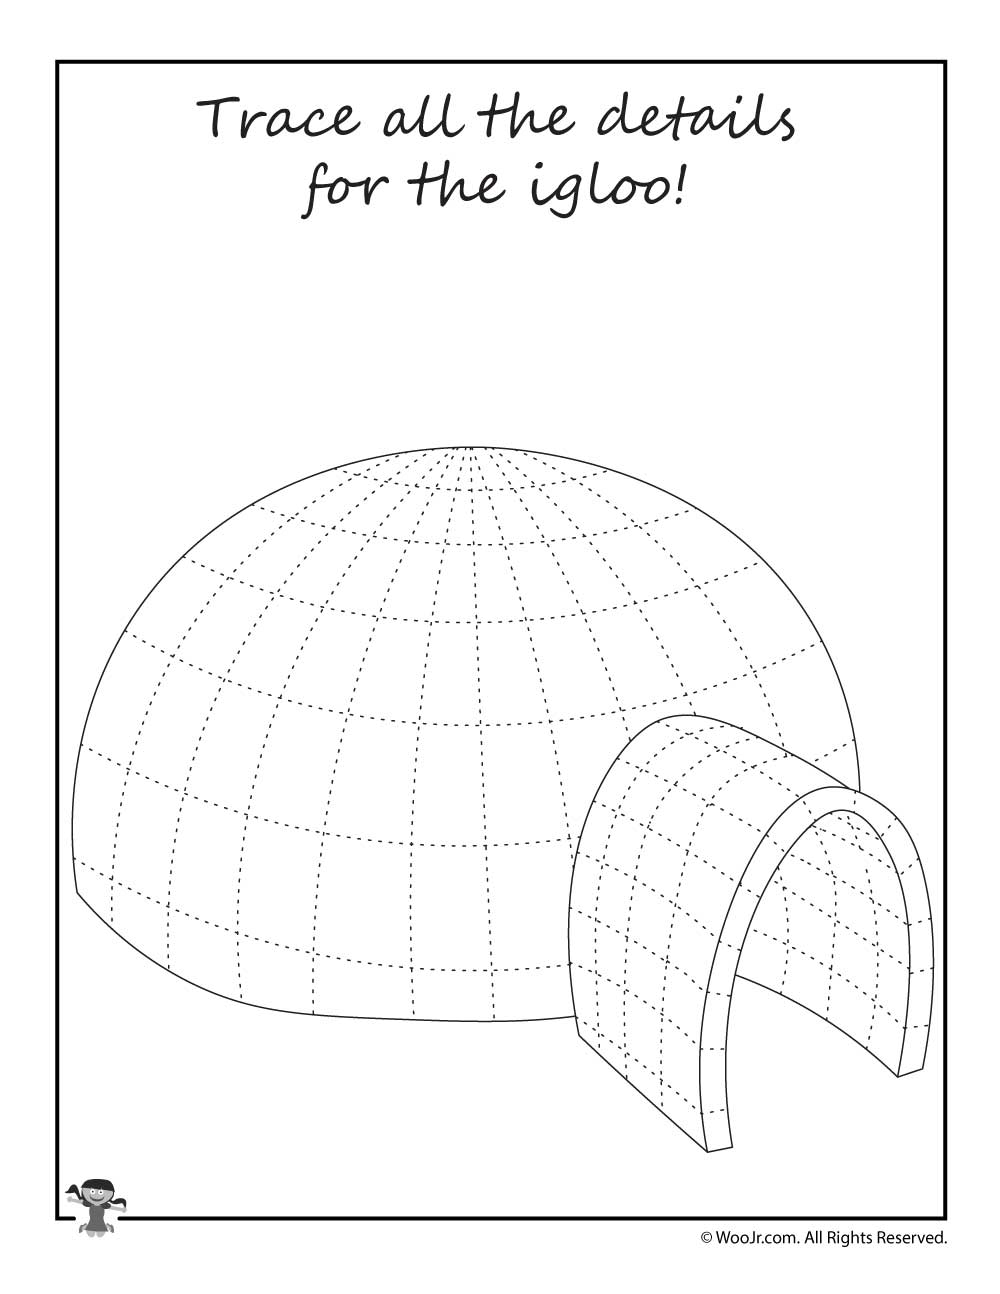 igloo-simplified Valentine S Day Letter Writing Template on english class, 2nd grade, for first grade, second grade, for kids pdf,